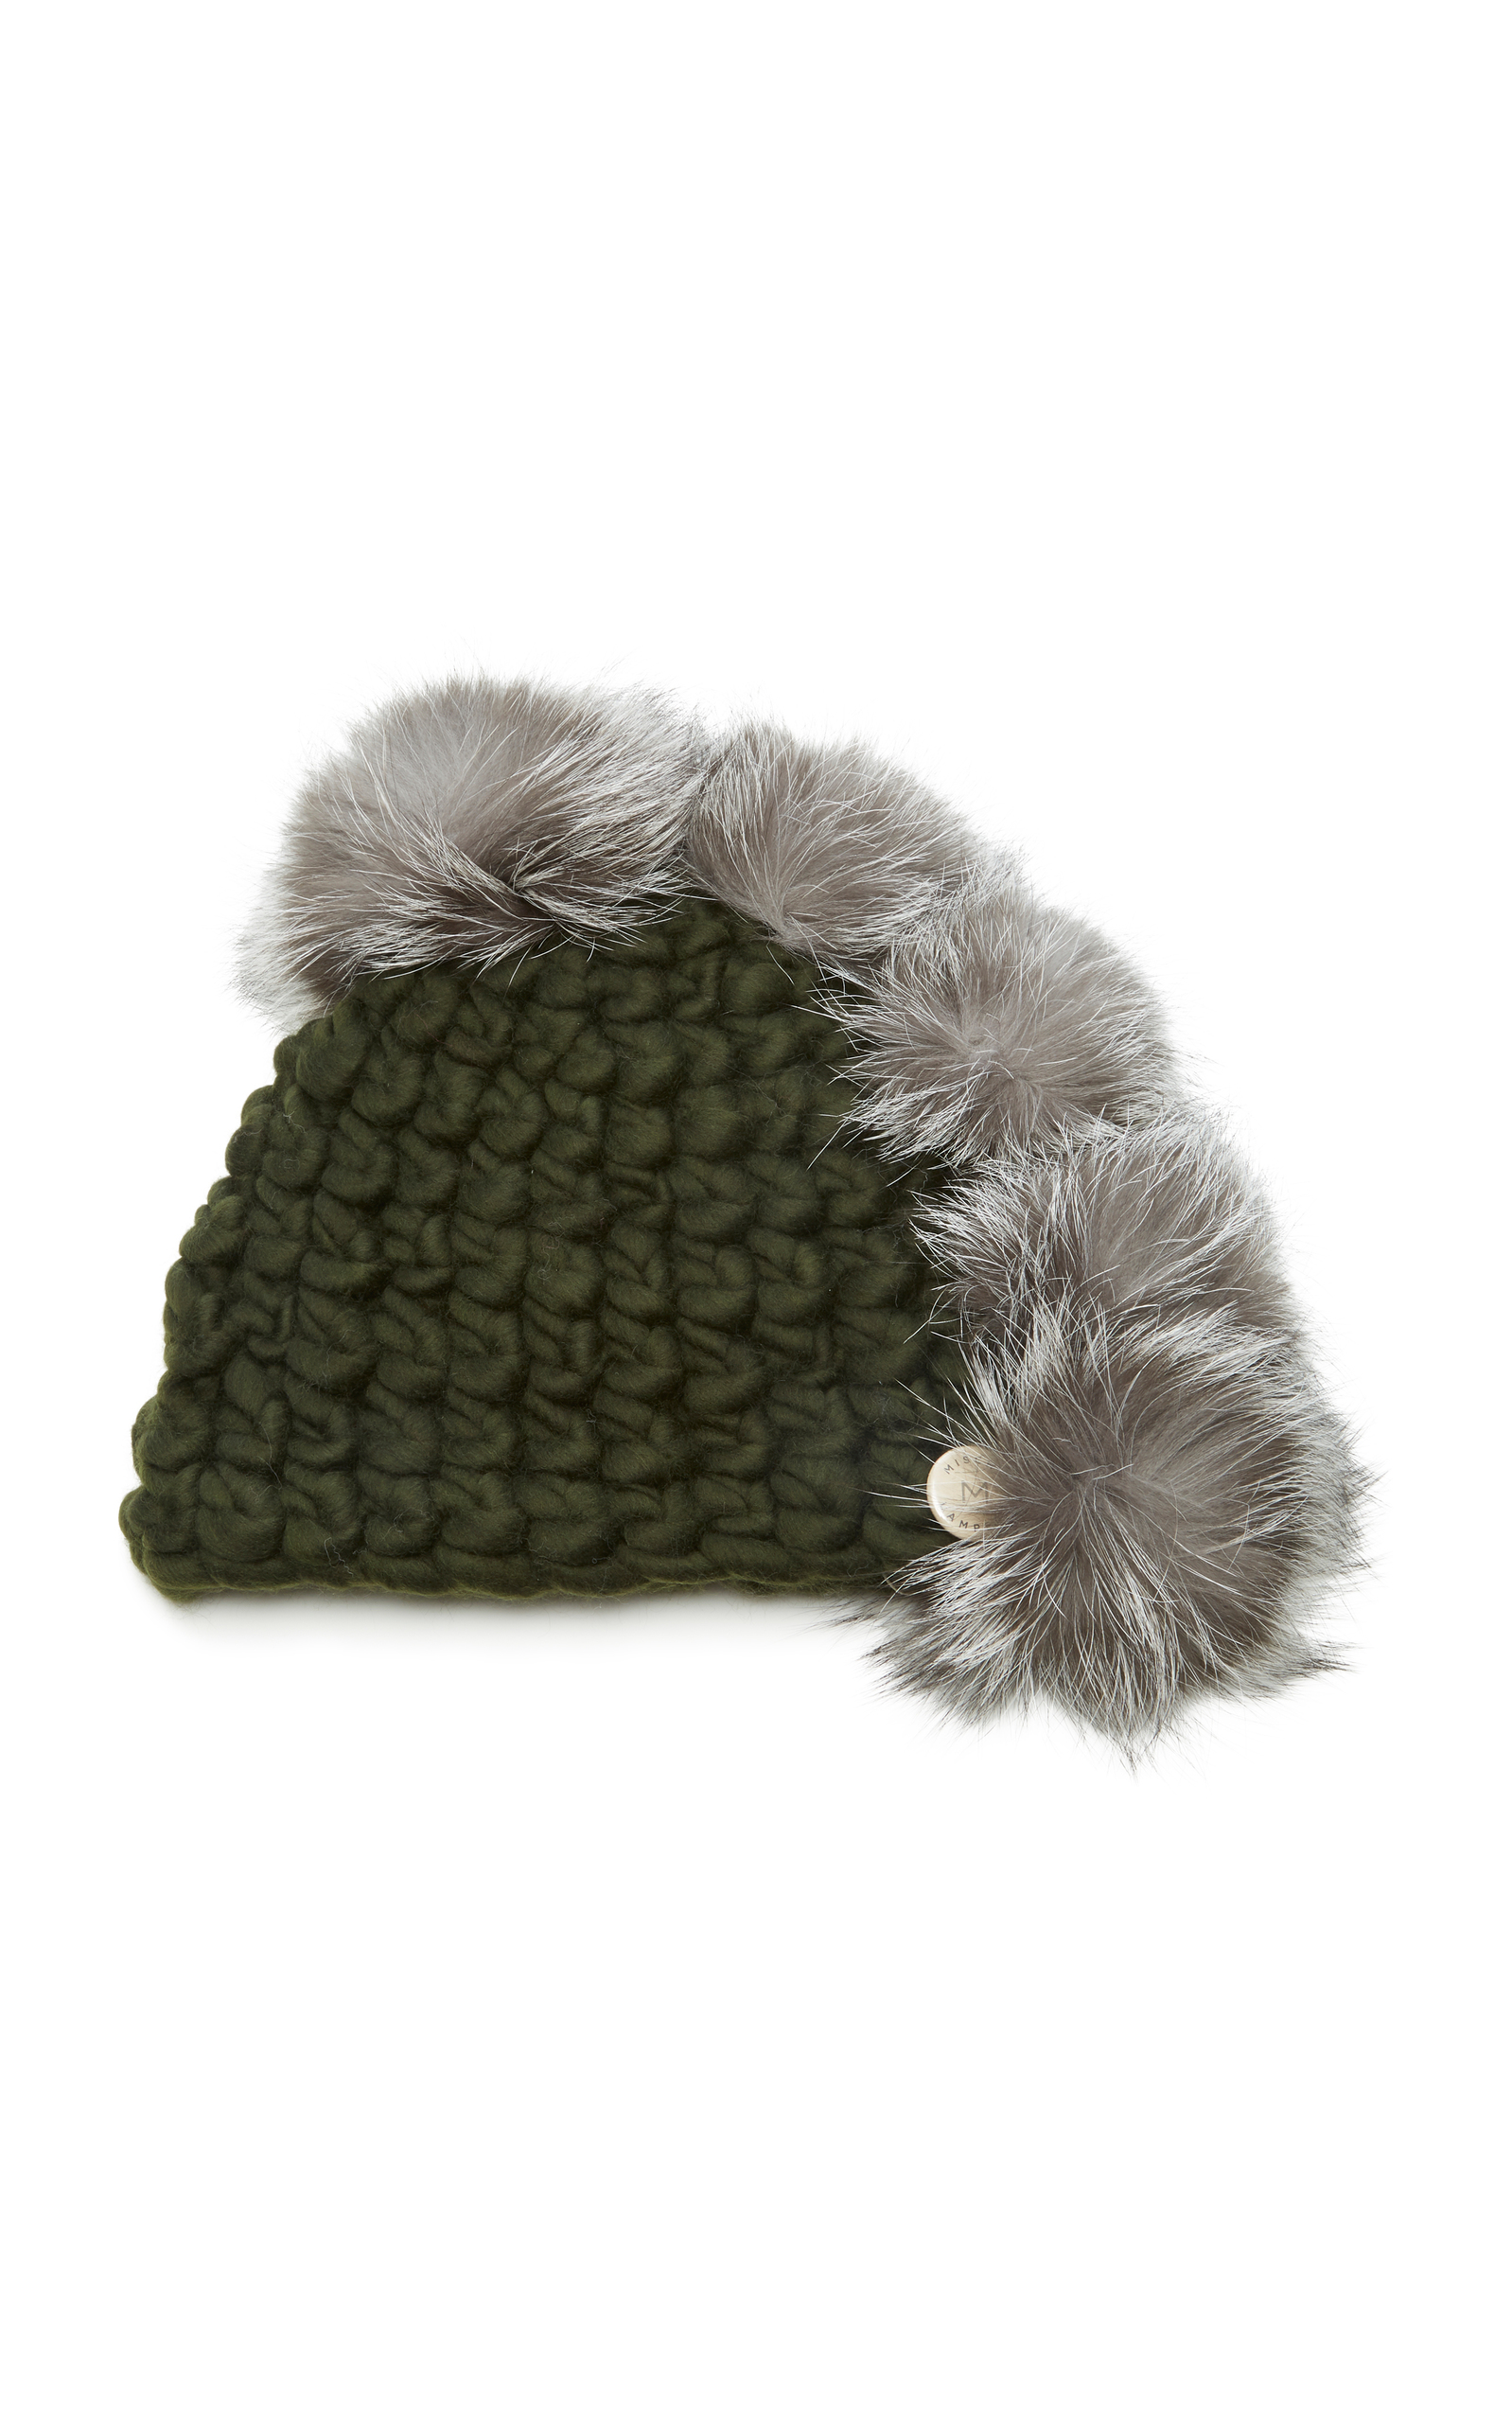 MISCHA LAMPERT POHAWK MERINO WOOL CHILD BEANIE